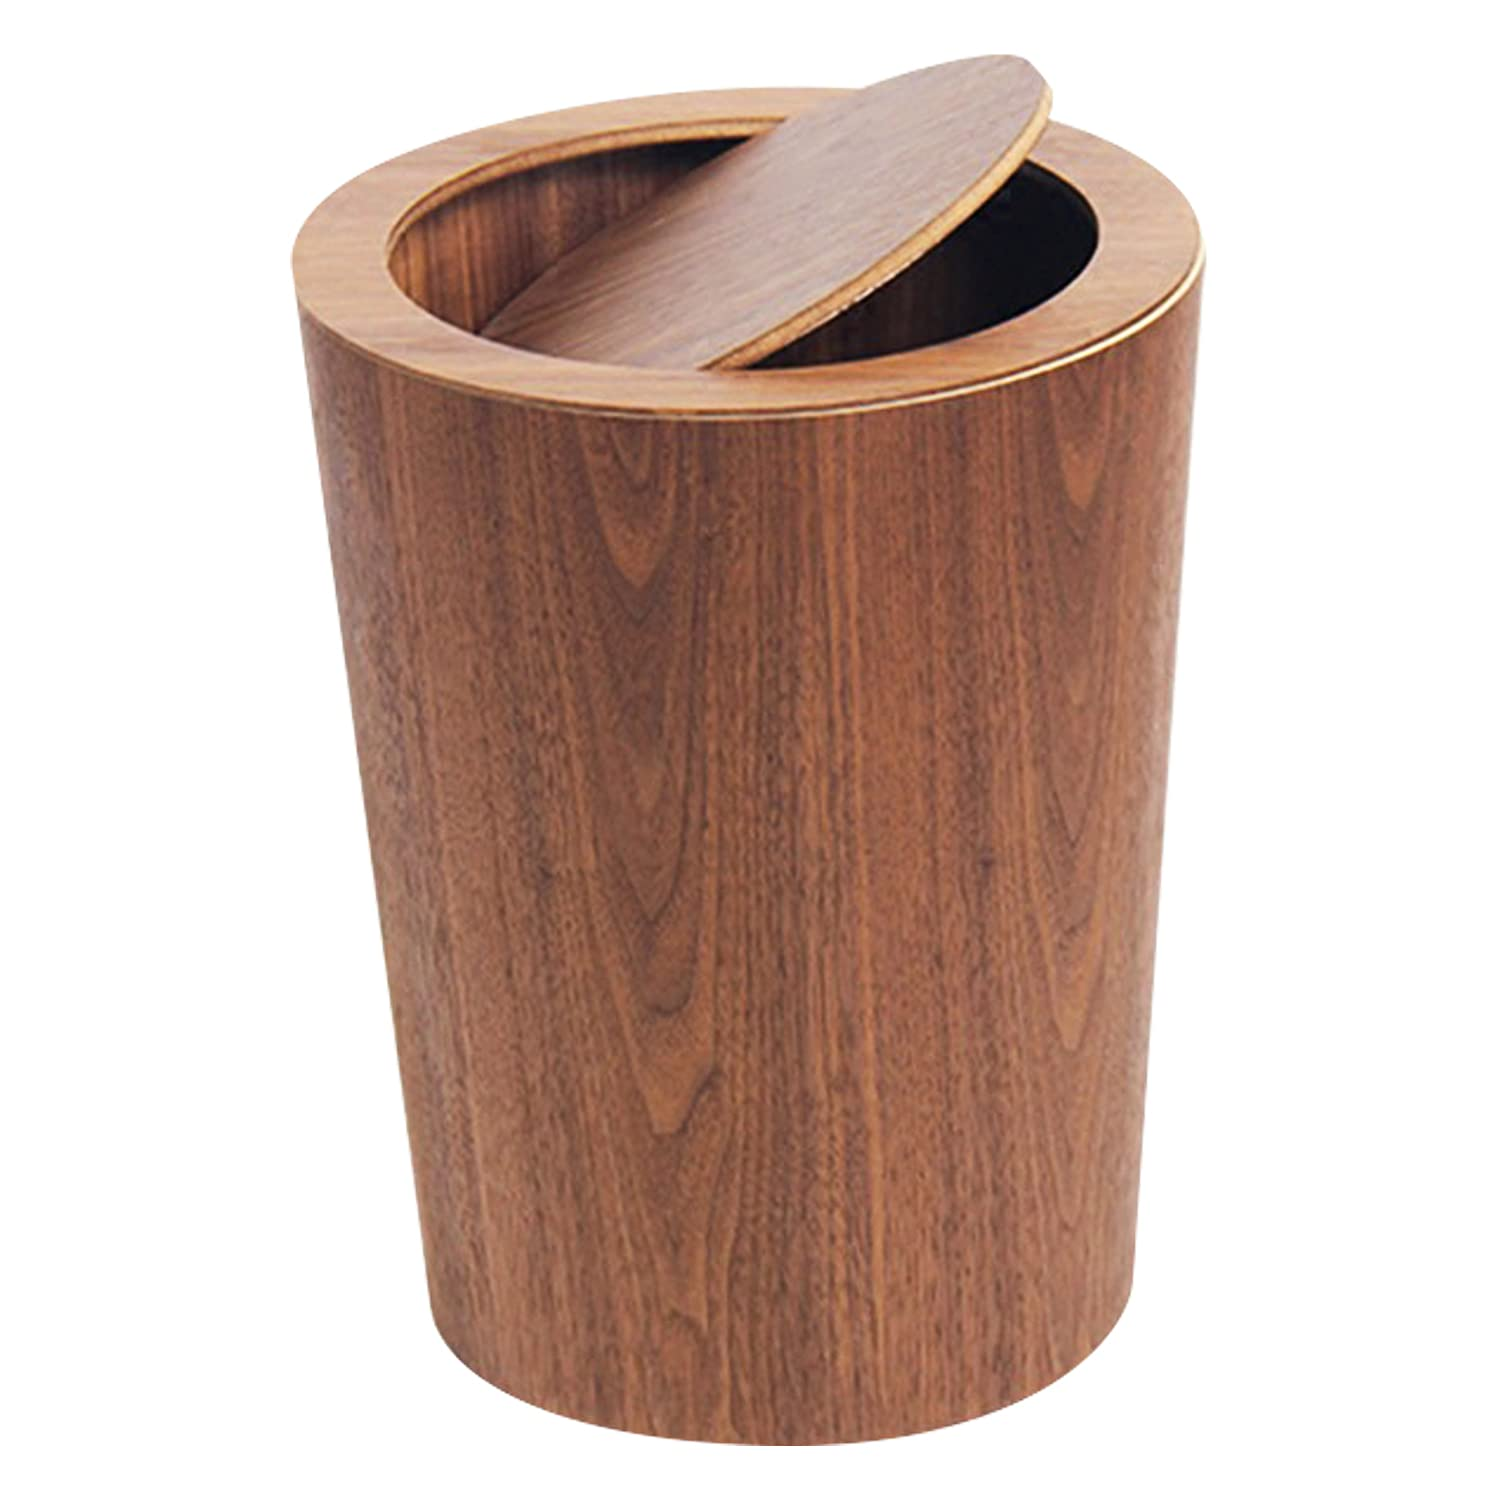 Modern SALENEW very popular Round Trash Can with Lid - Real Waste Manufacturer regenerated product i Wood Solid Basket